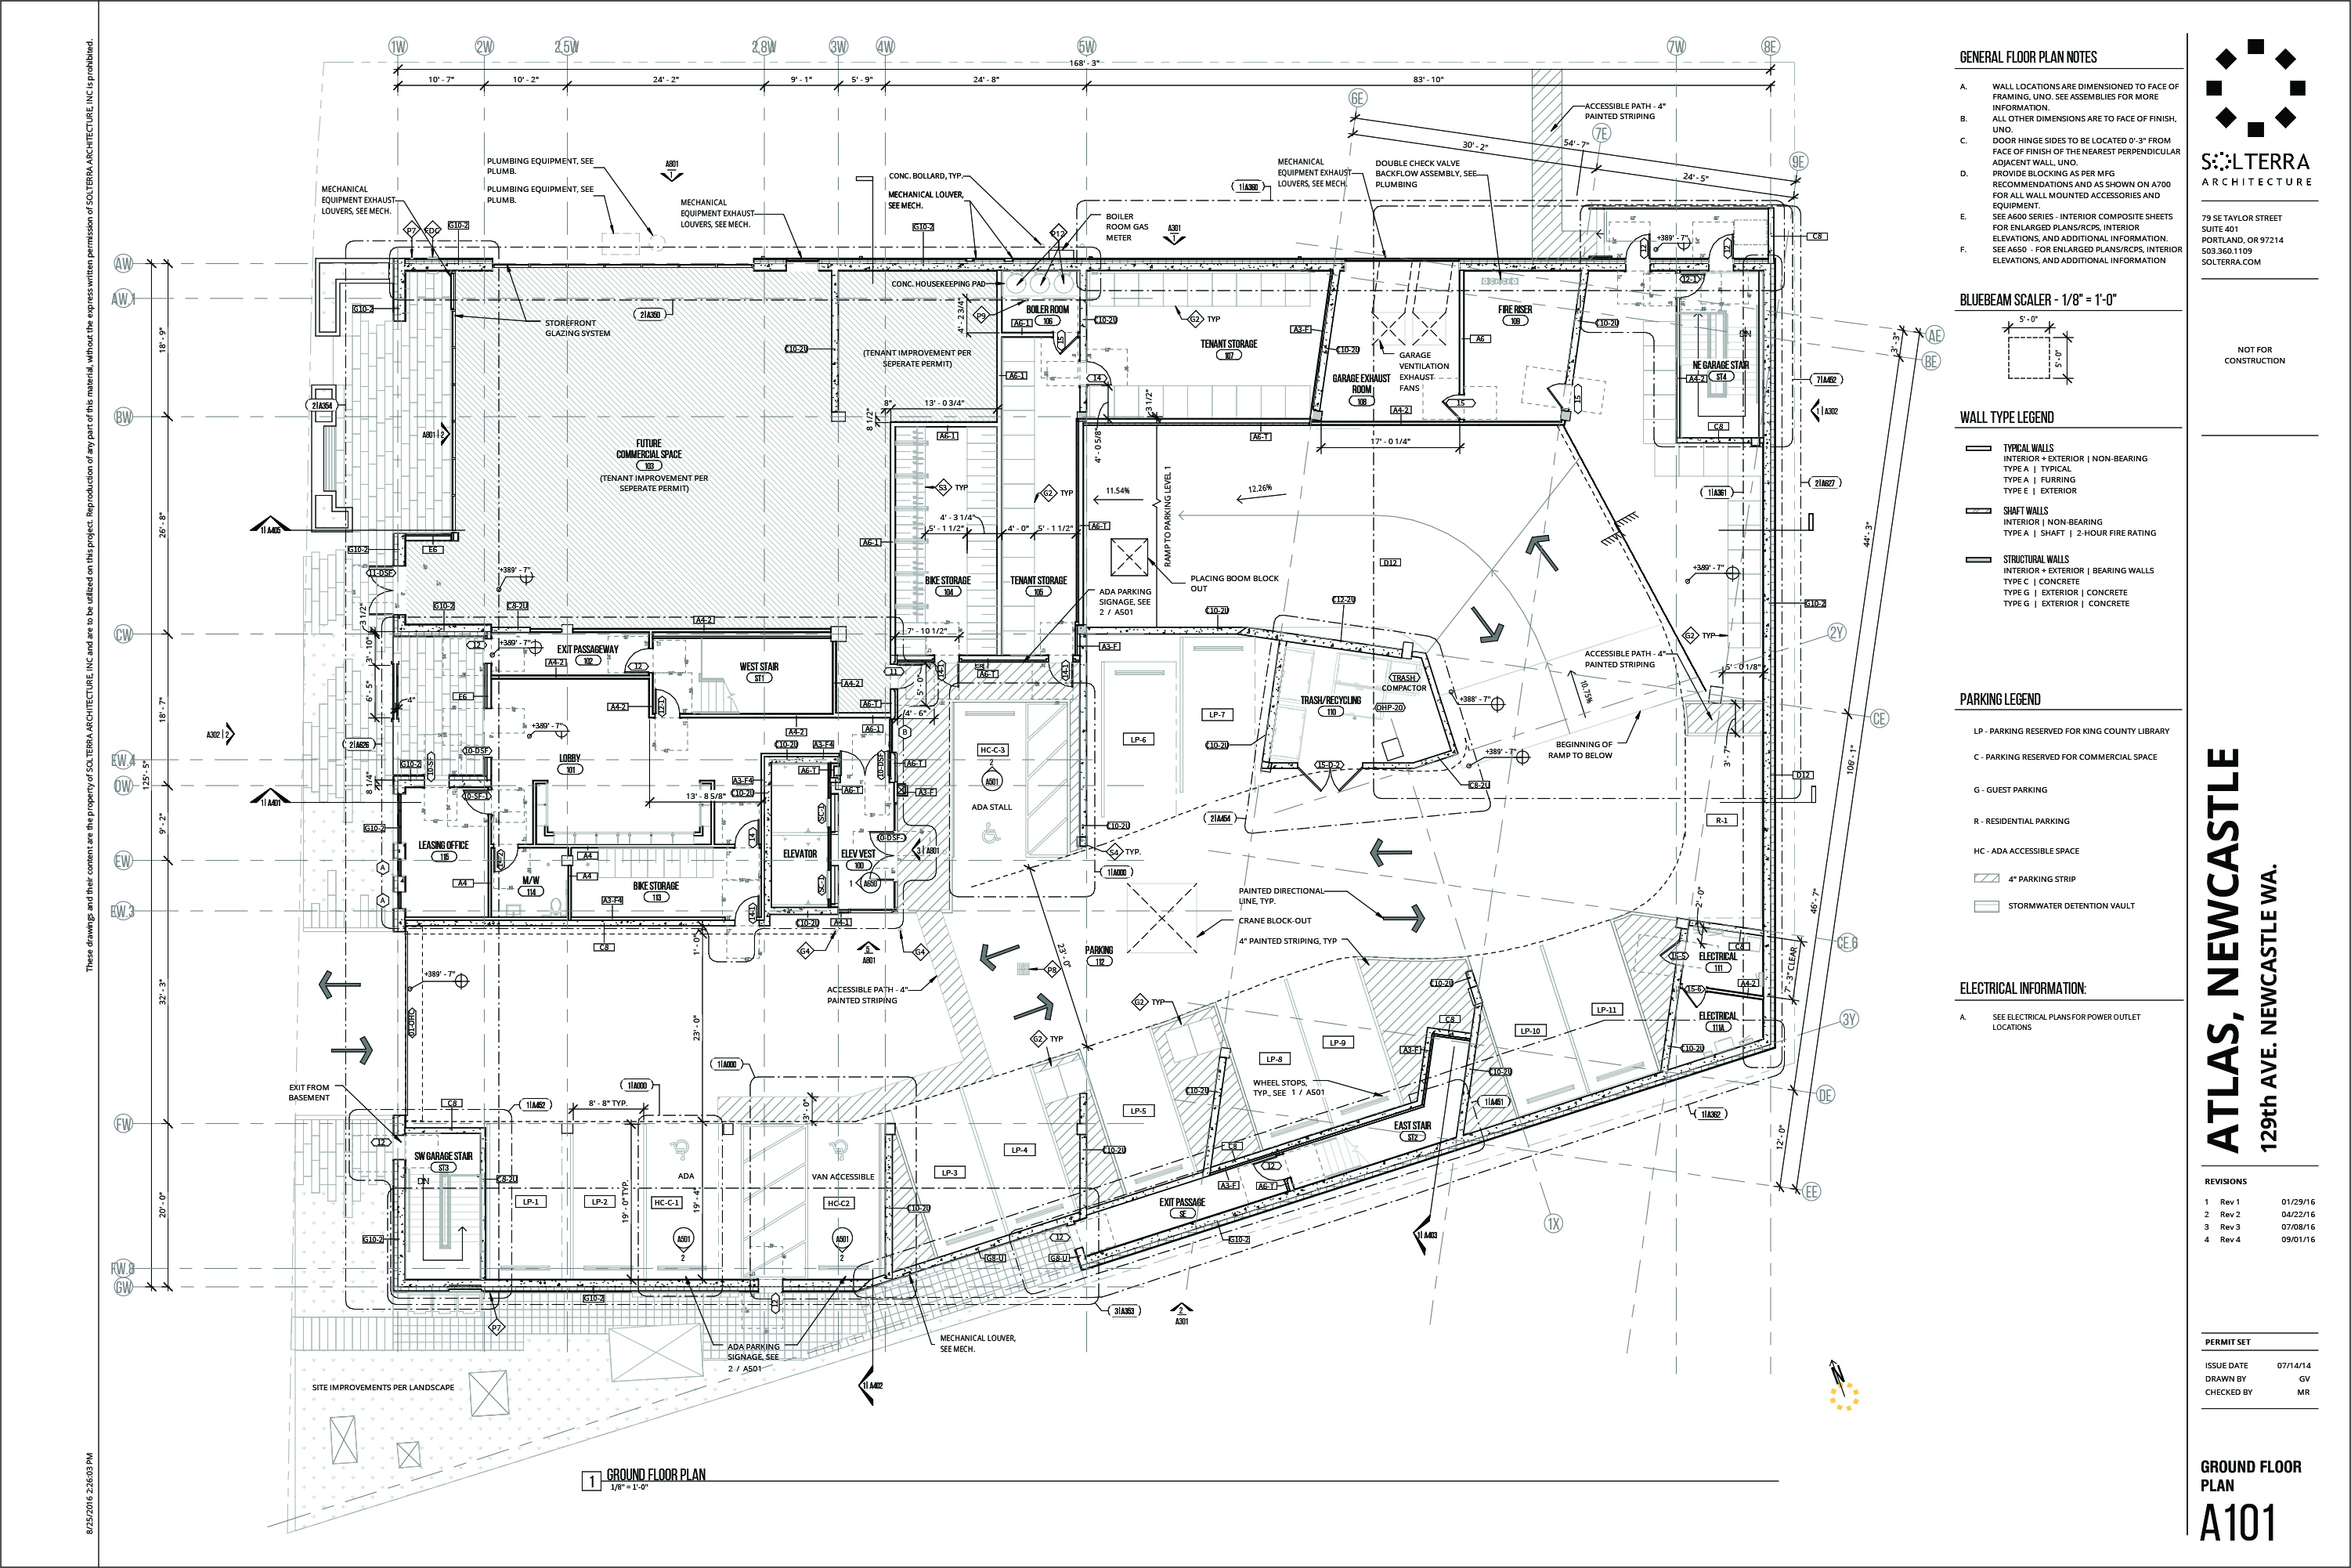 160825_ATLAS Ground Floor Plan